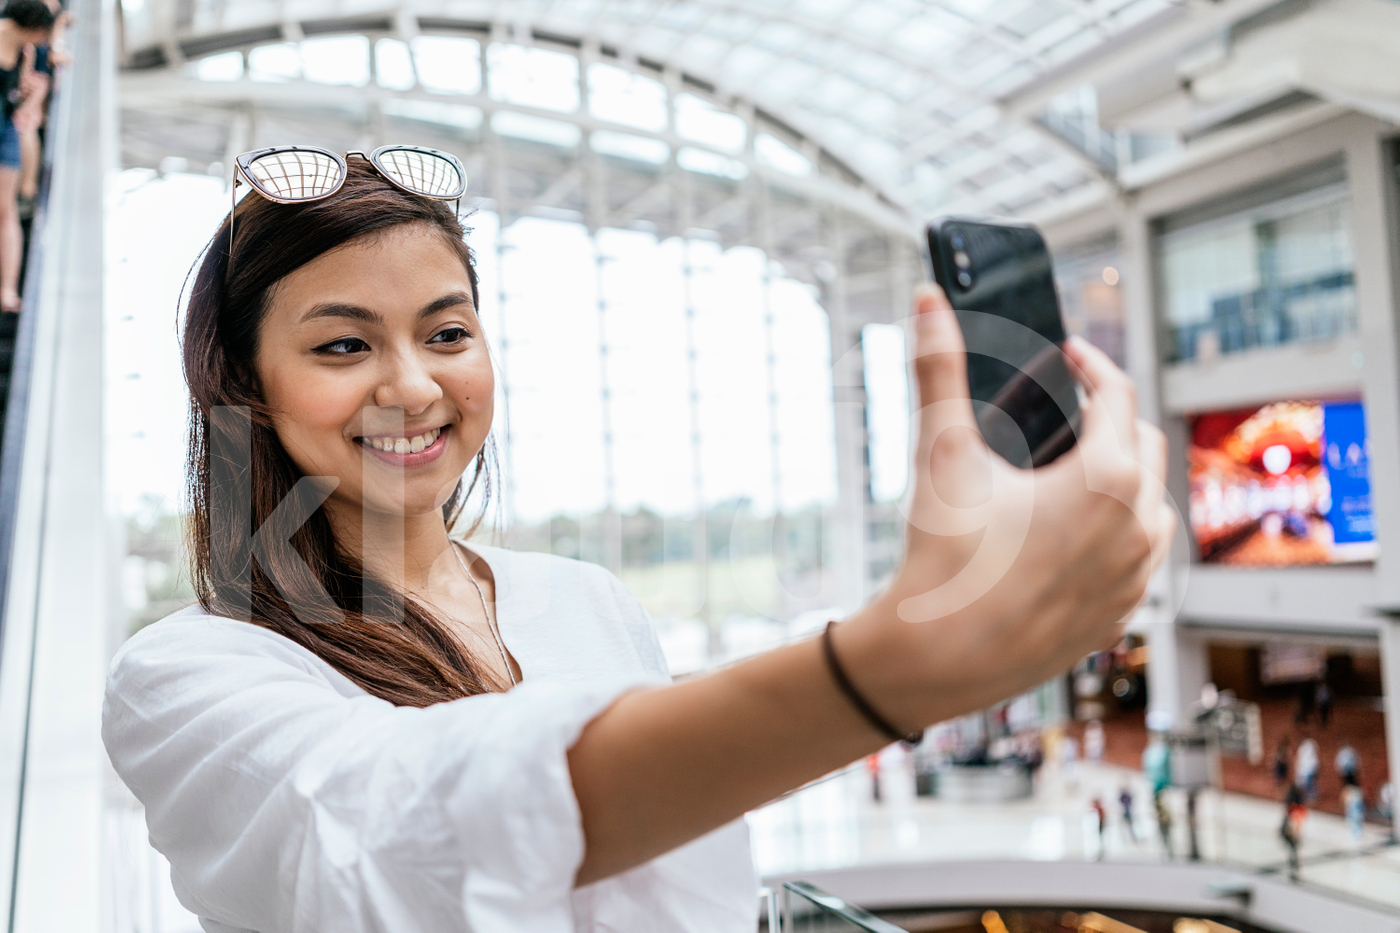 Asian woman posing for a selfie in a mall